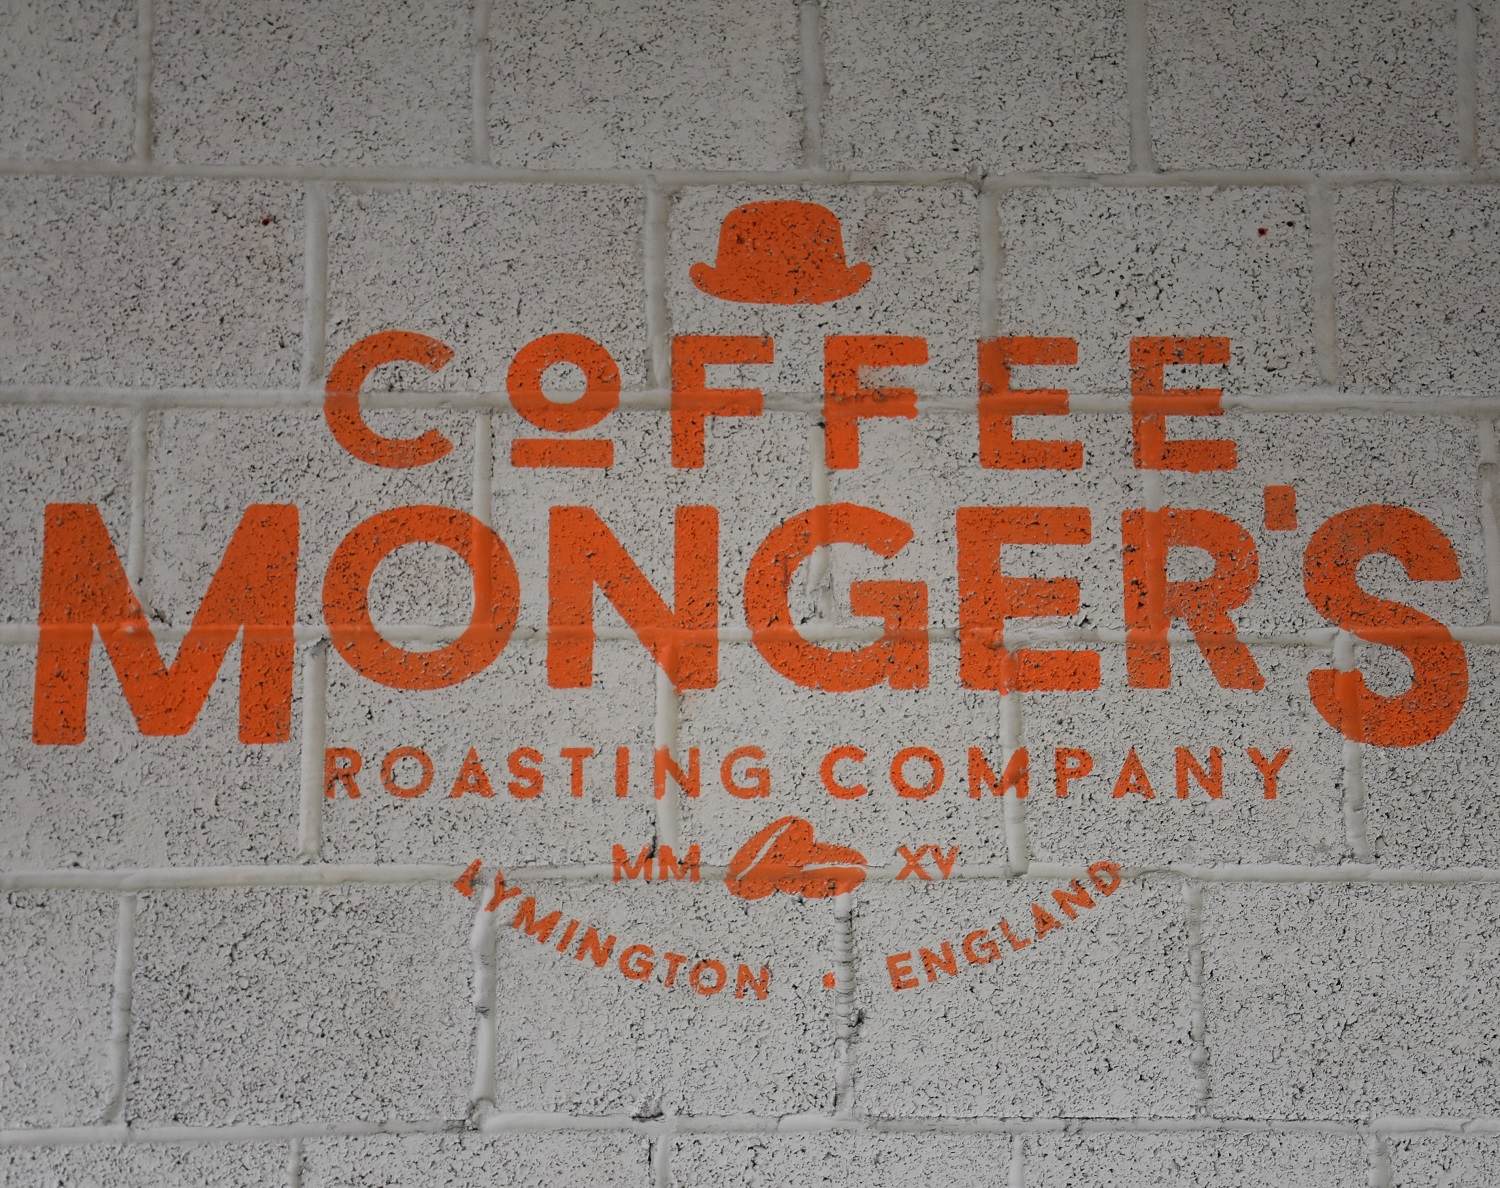 The Coffee Monger's Roasting Company's logo from the wall of the roastery in Lymington, Hampshire.